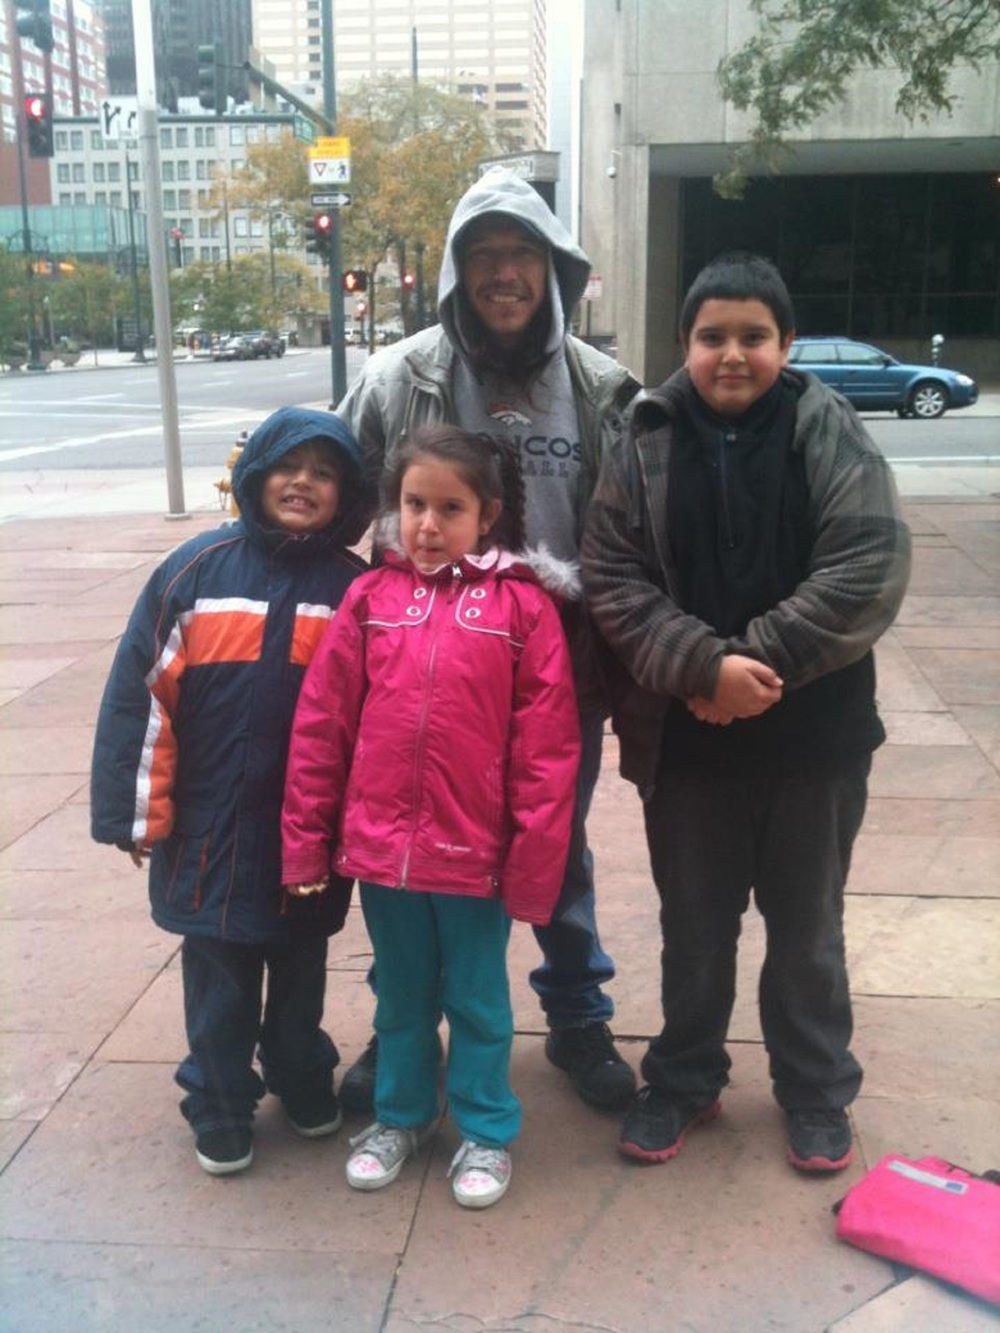 Styling with their new coats, this Denver family appreciates the dhms for our part in making it happen.